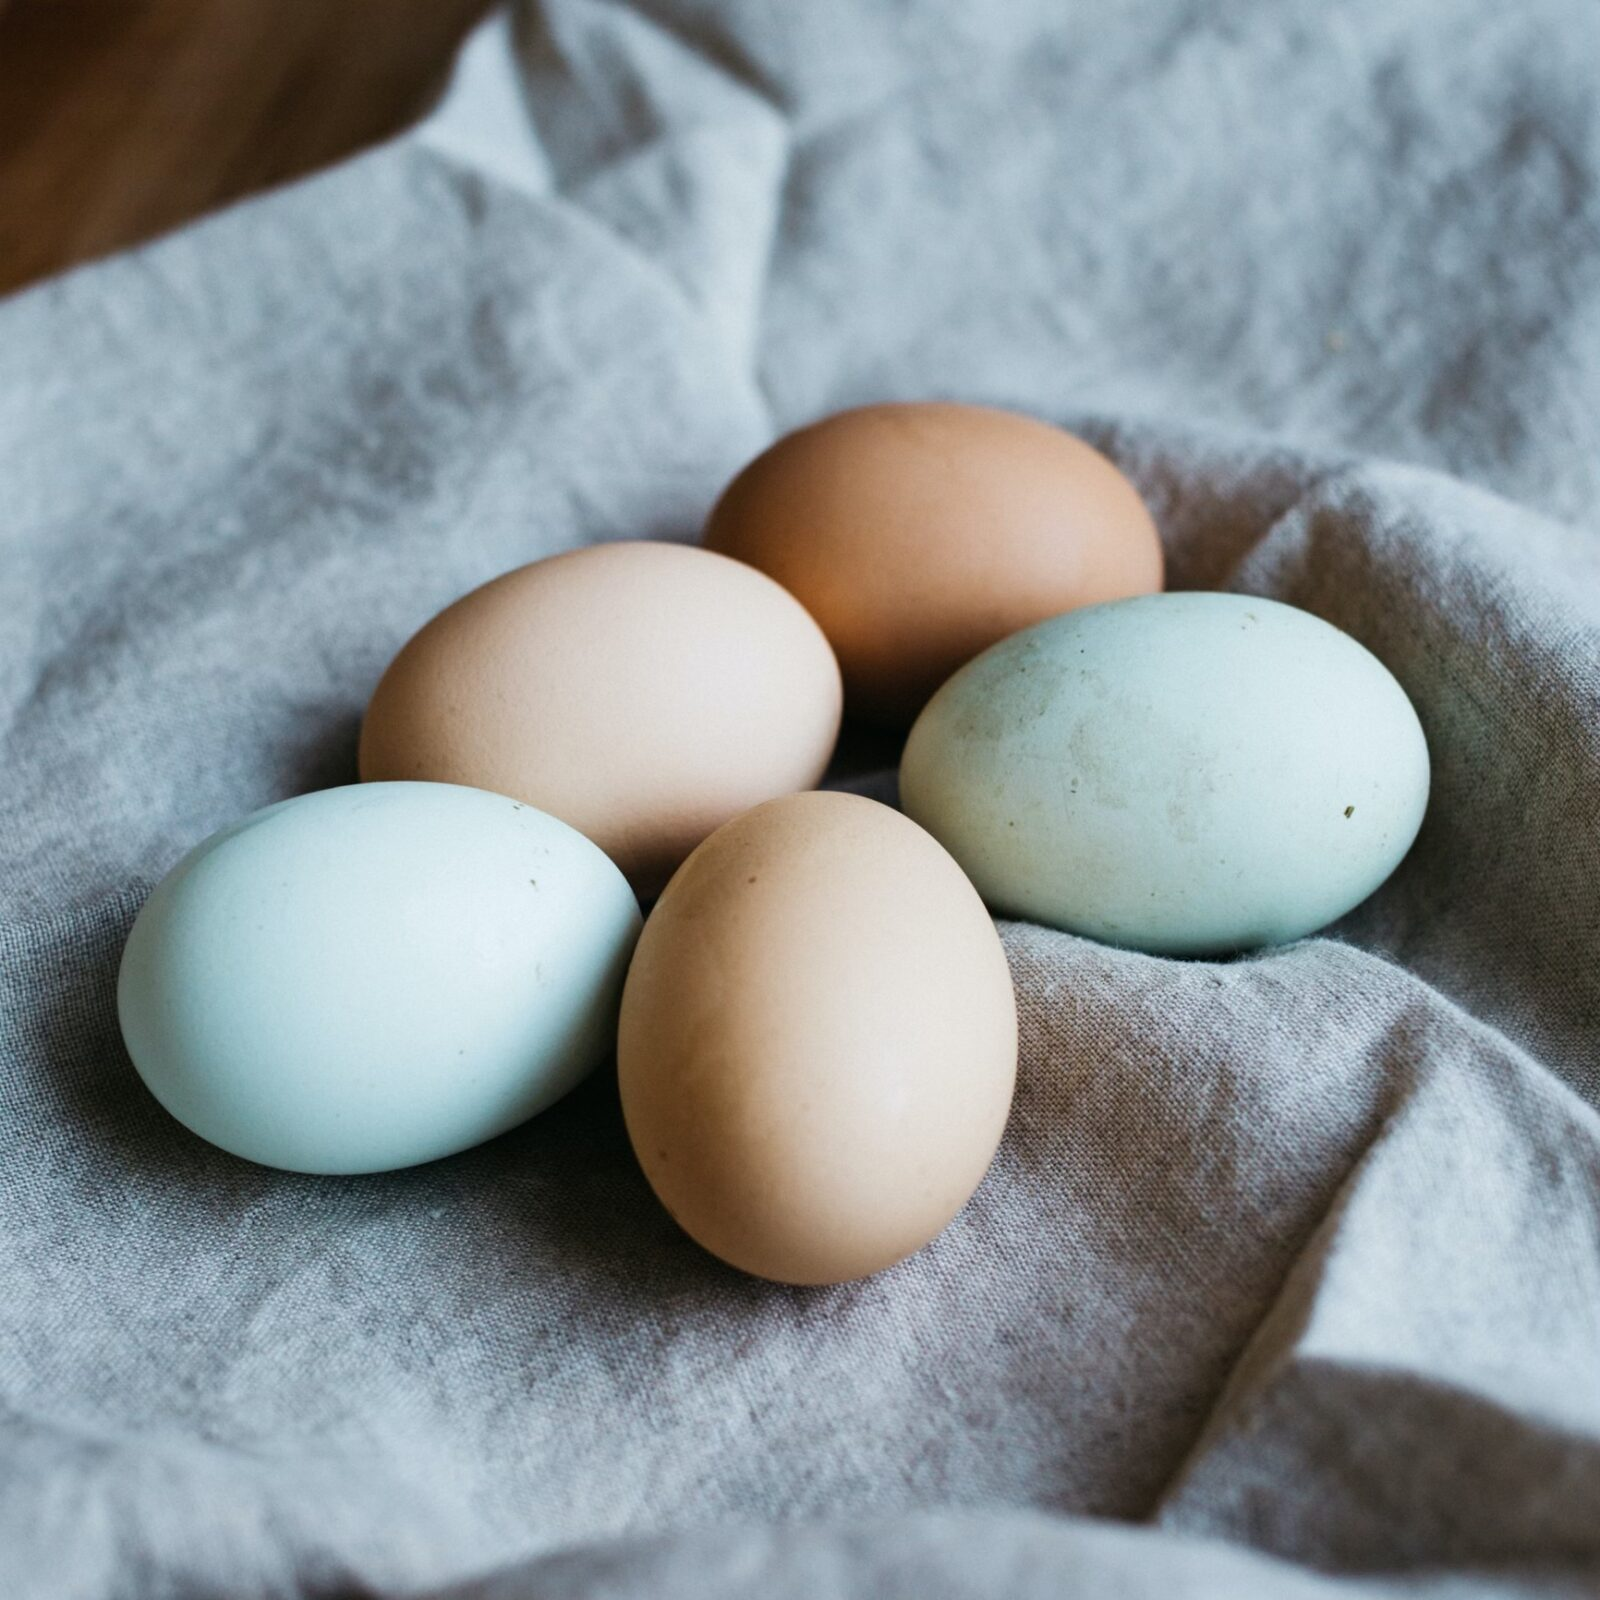 Easter Eggs, Nutrition, and an Easter Menu